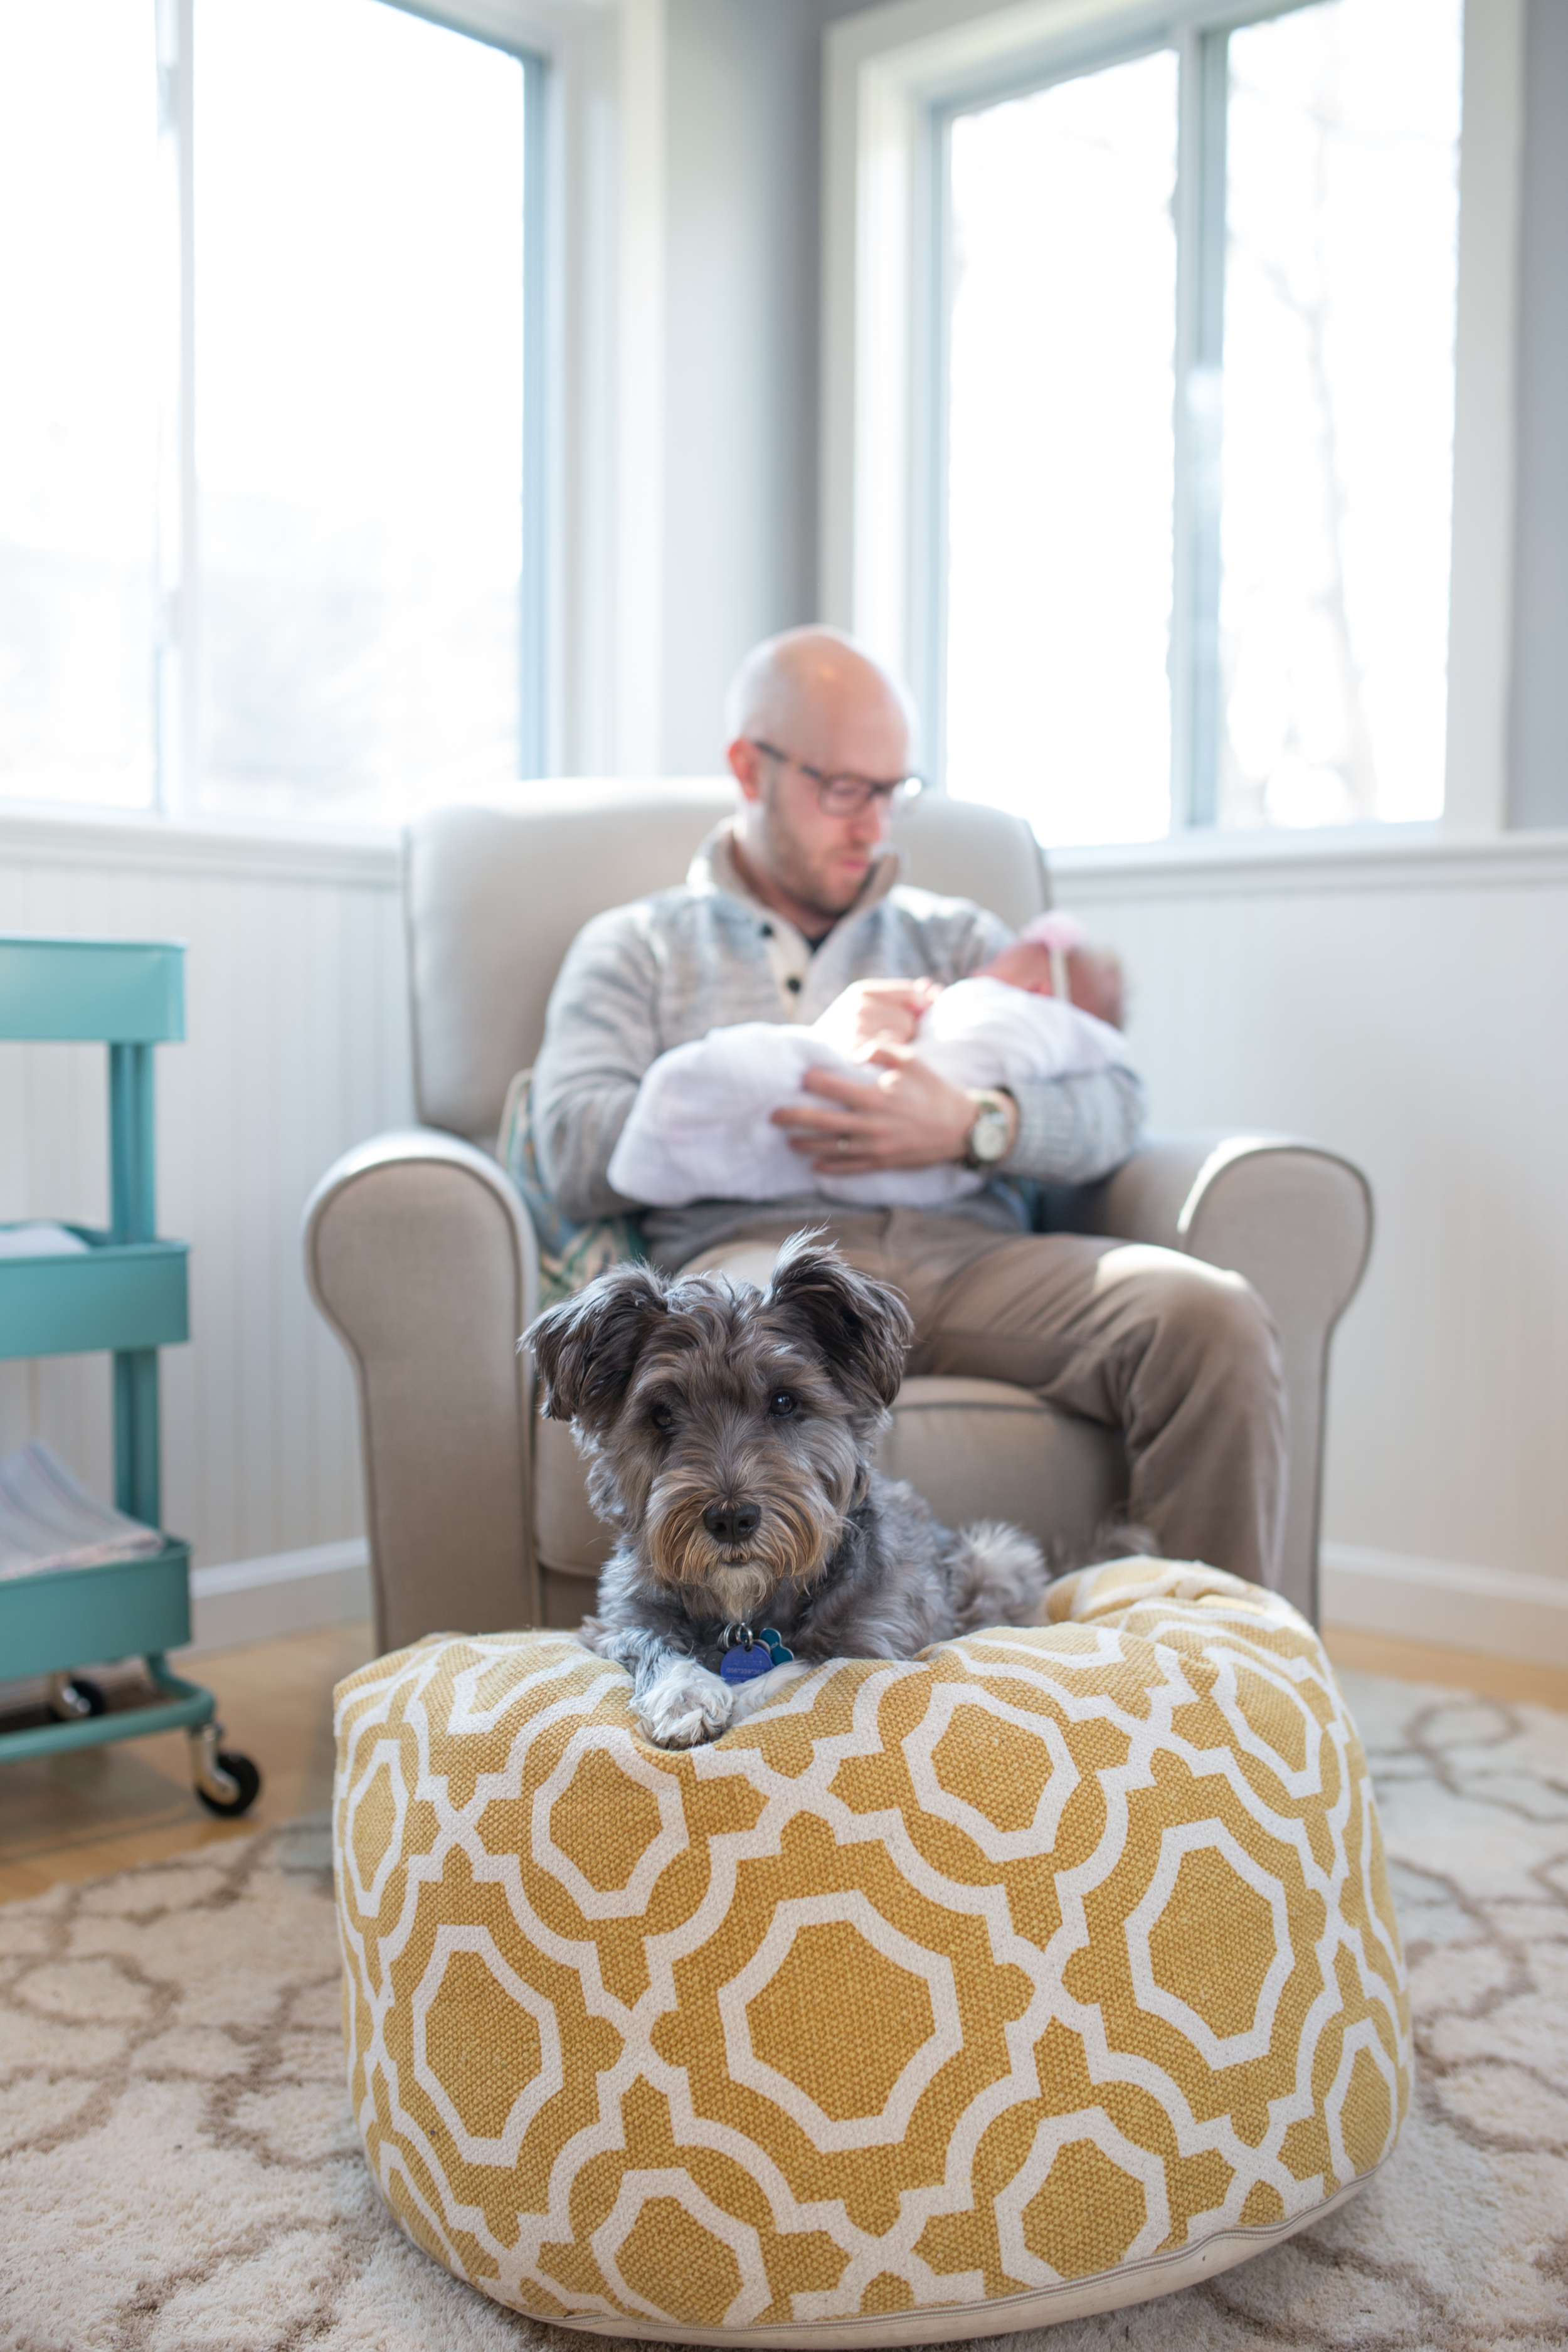 Dad holding Newborn while dog looks at the camera - Cape Cod Massachusetts